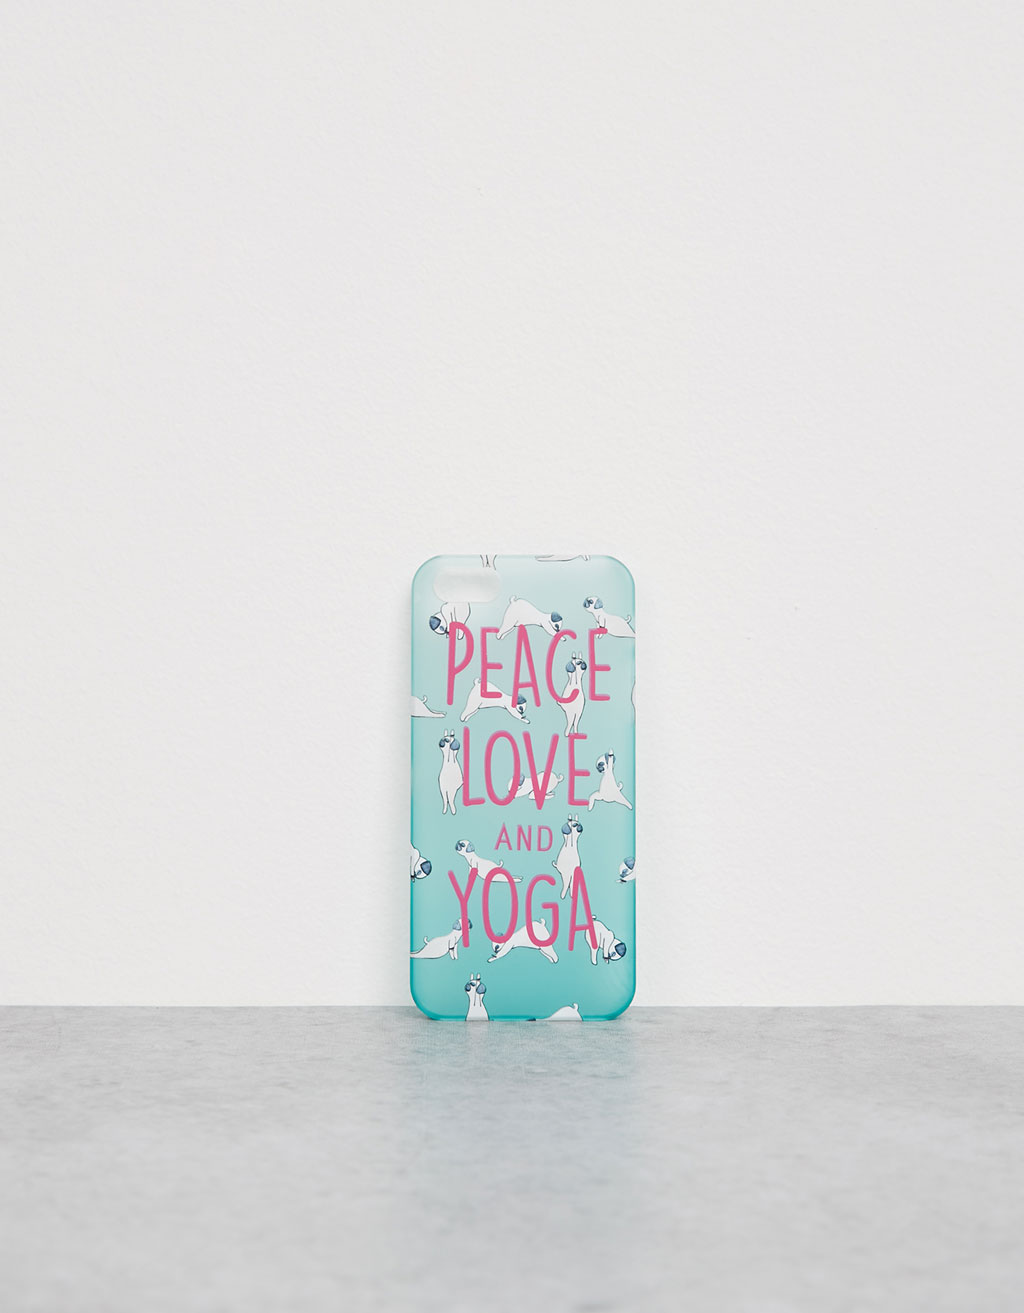 Carcasa transparente 'Yoga Dog' iPhone 5/5s